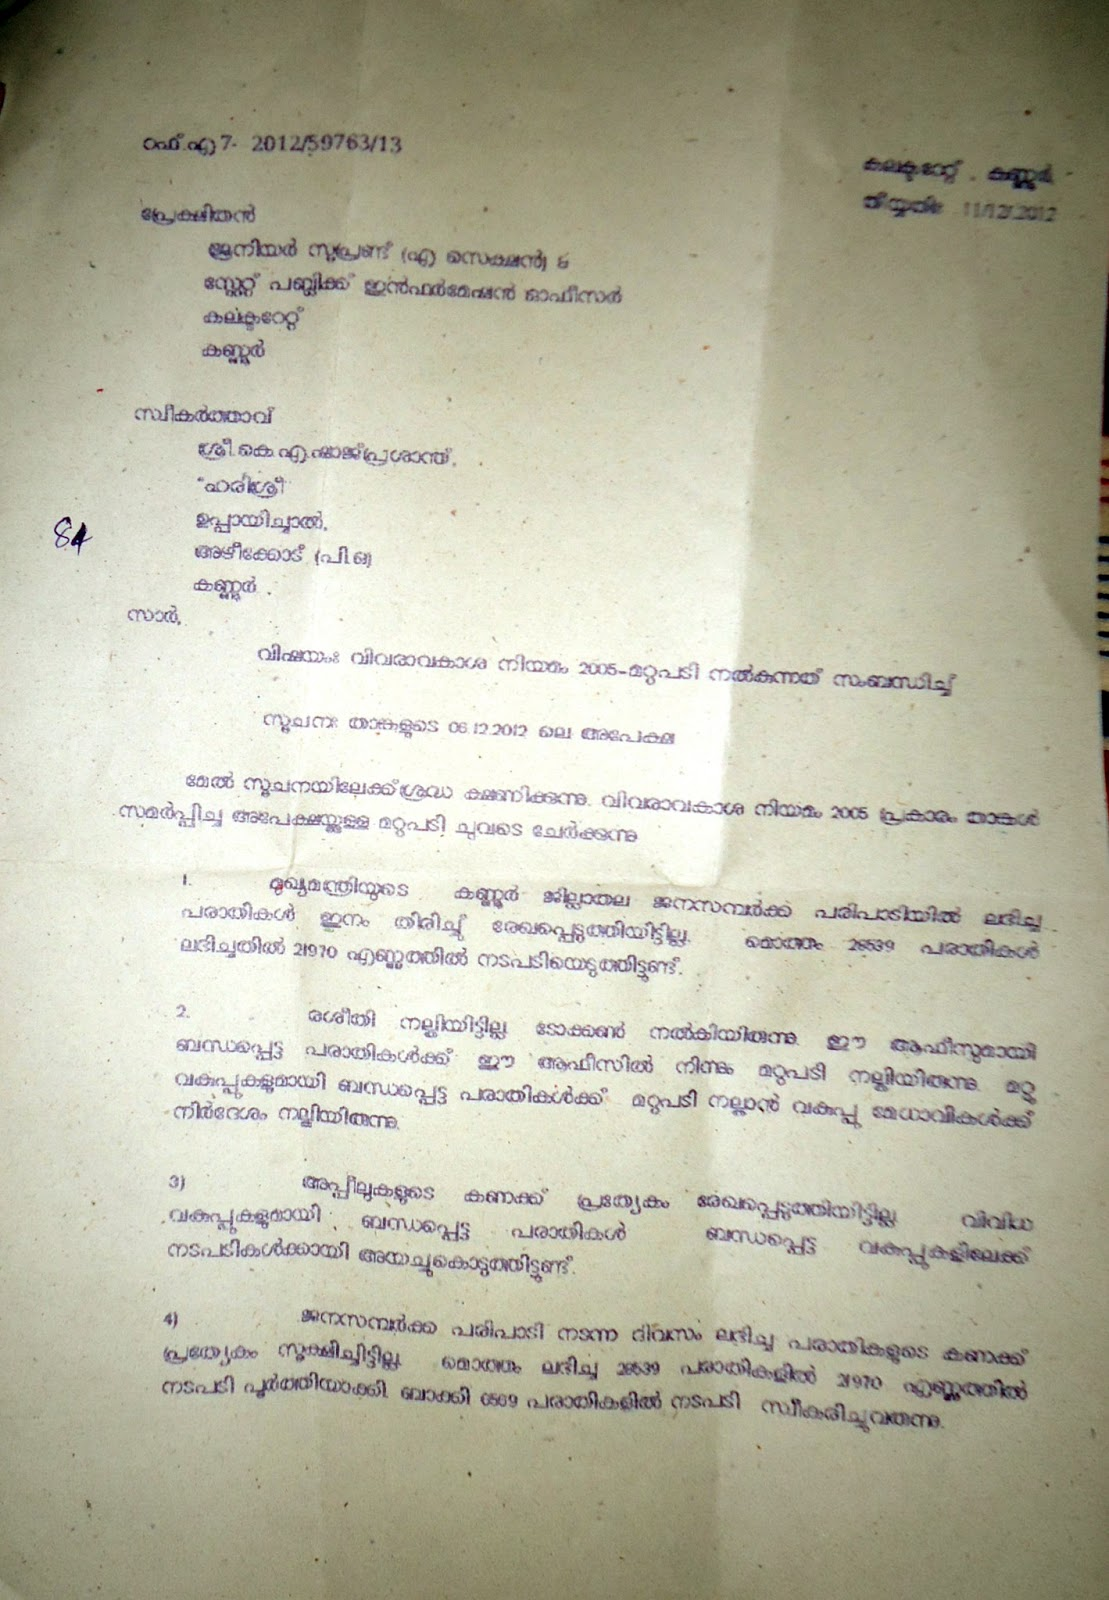 Award to kerala chief minister purpose of the un public service complaint may be addressed to a primary level officer ie village officer sho of police station etc or to a district level official such as district spiritdancerdesigns Image collections